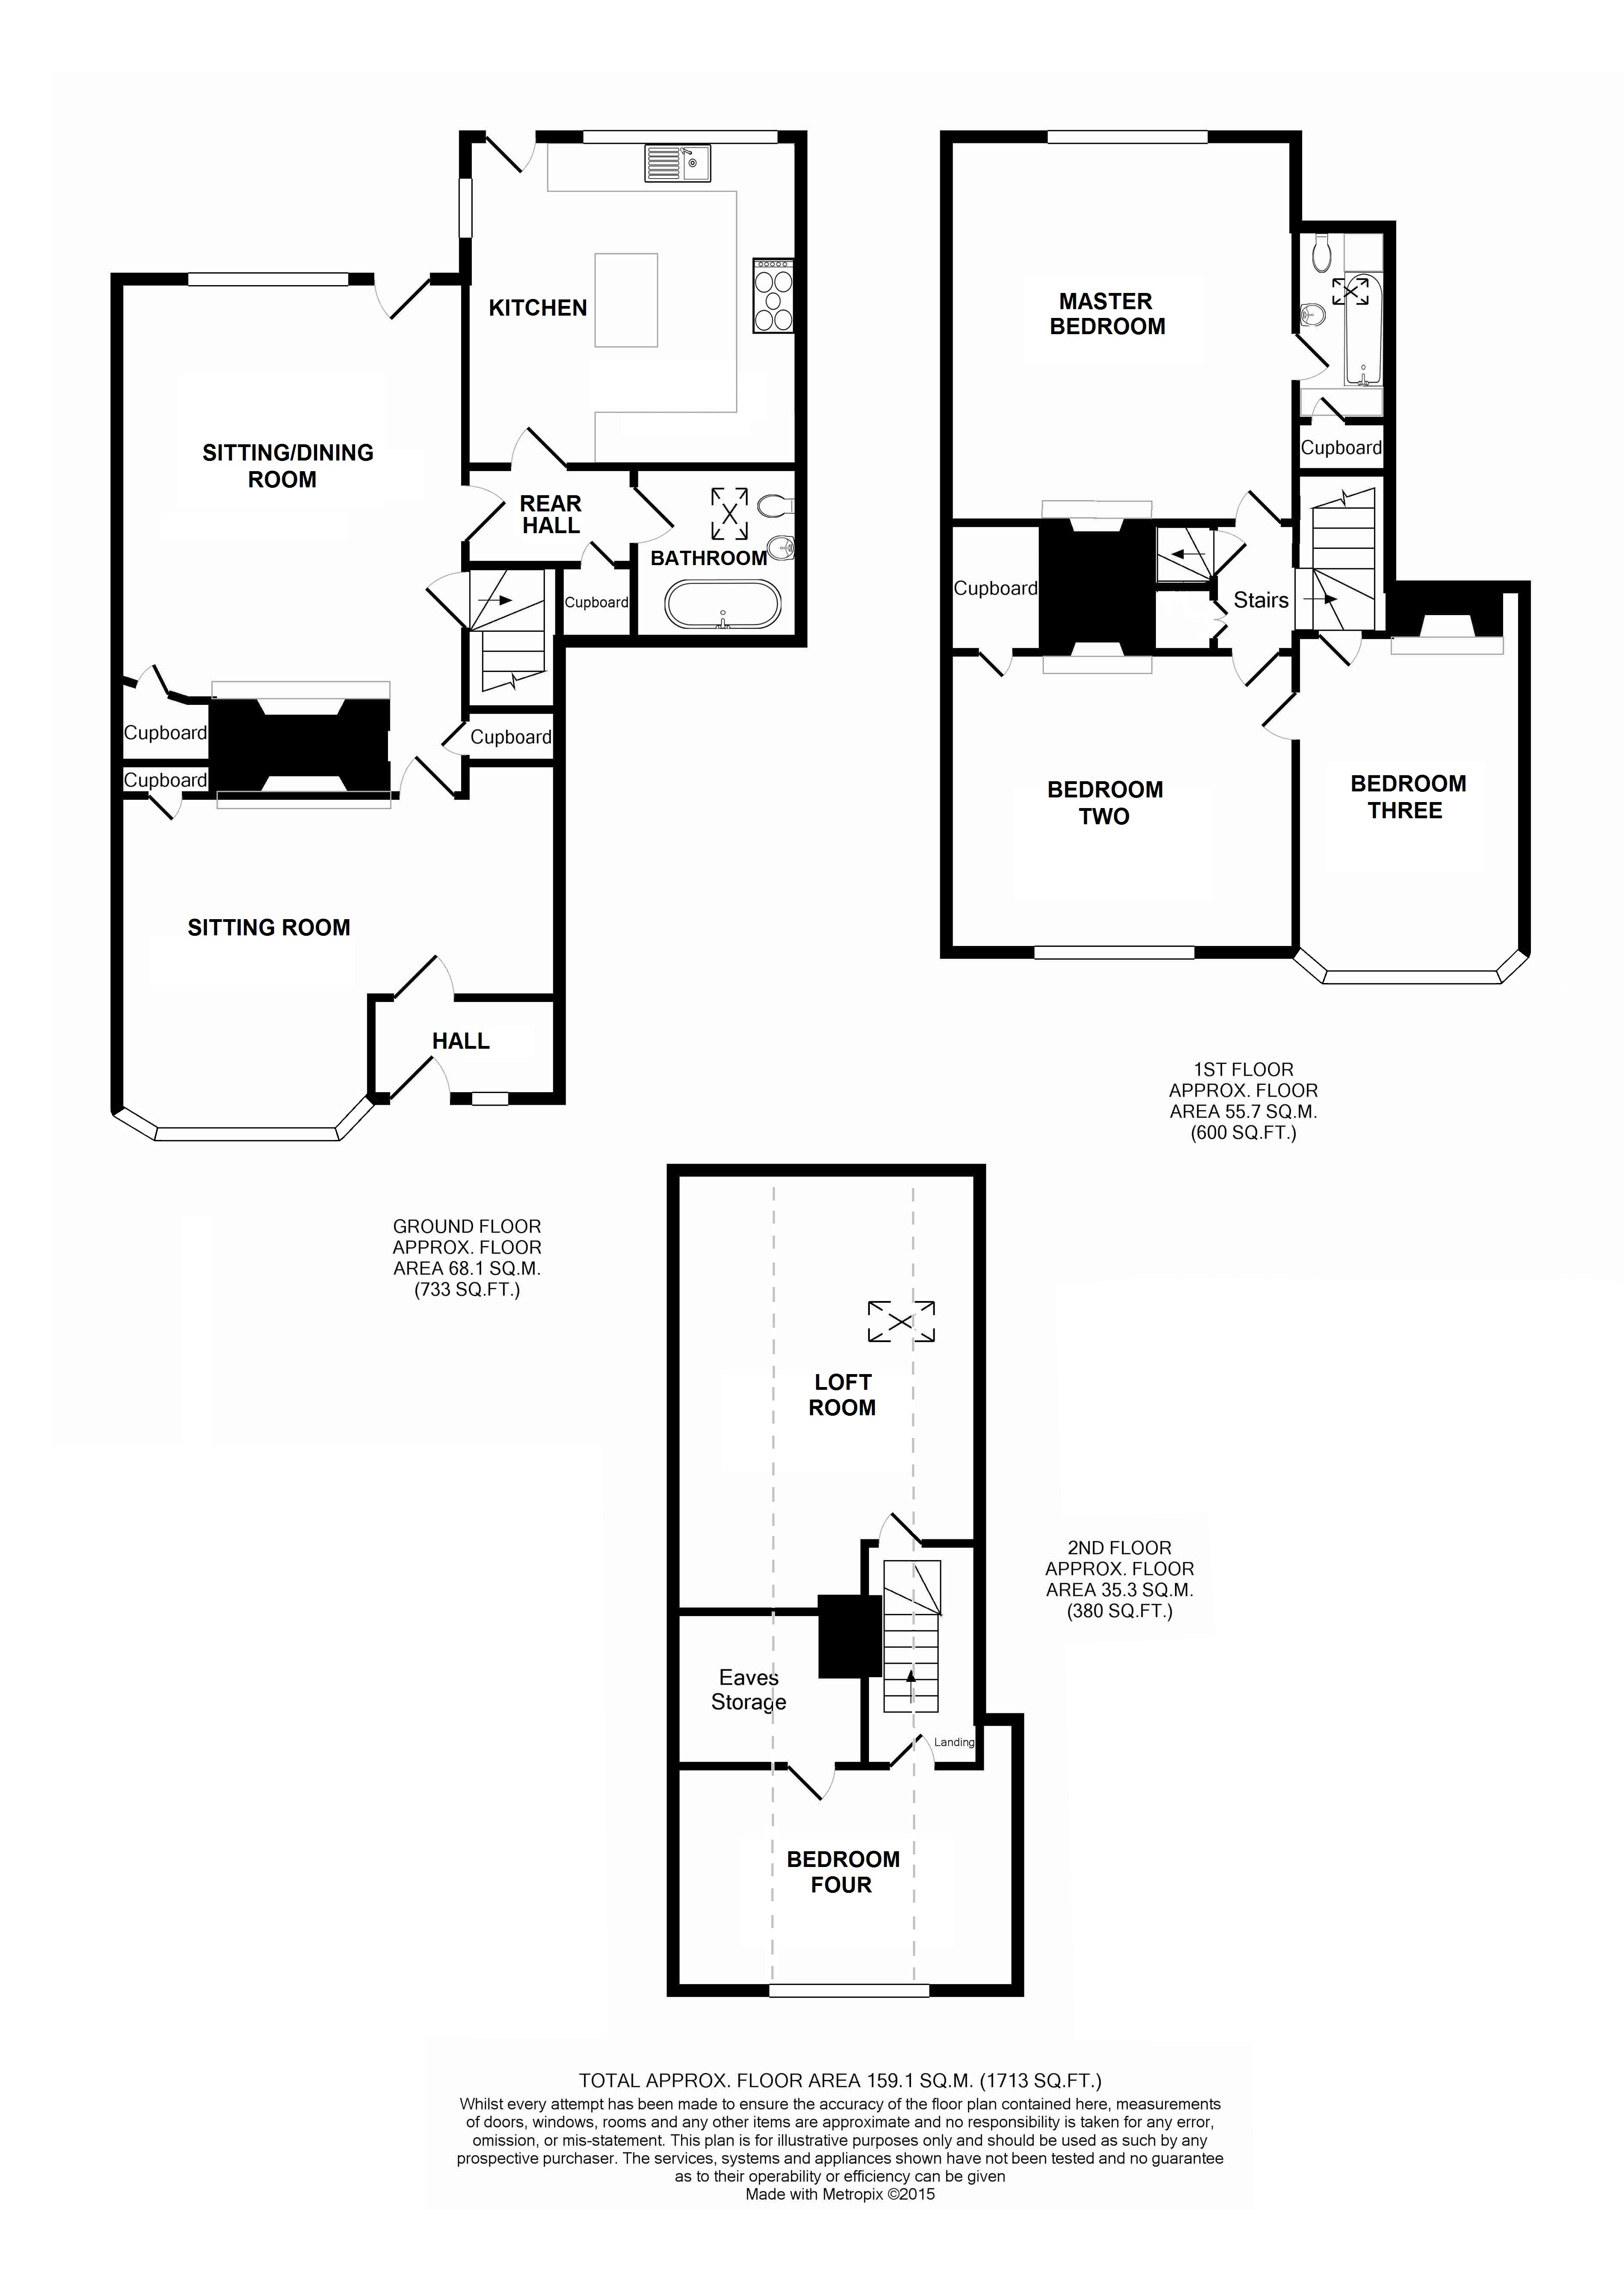 Floorplans For Hope Haven, 28 High Street, Charing